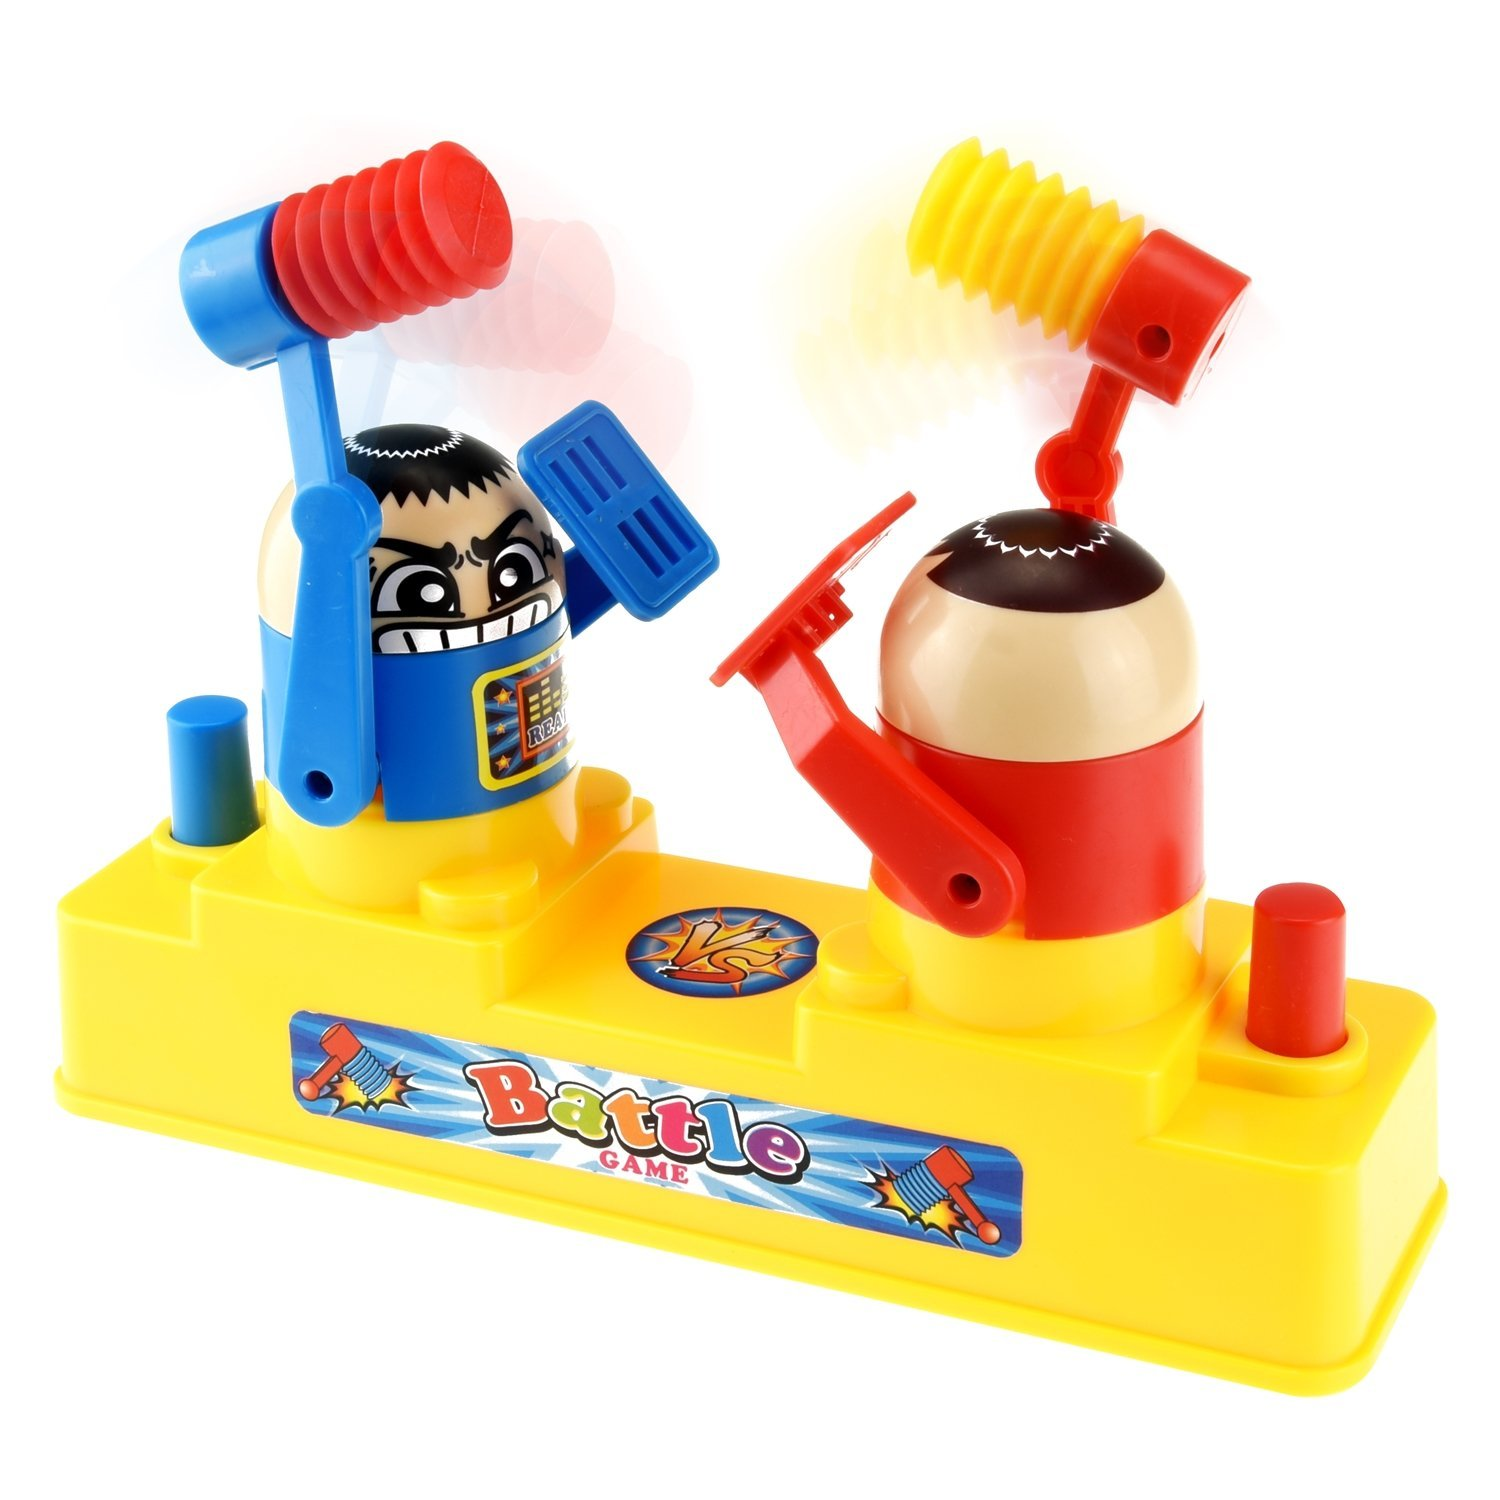 FAVTOY ISLAND - Mini Classic Arcade Hammer Battle Action Tabletop Game for Two Players